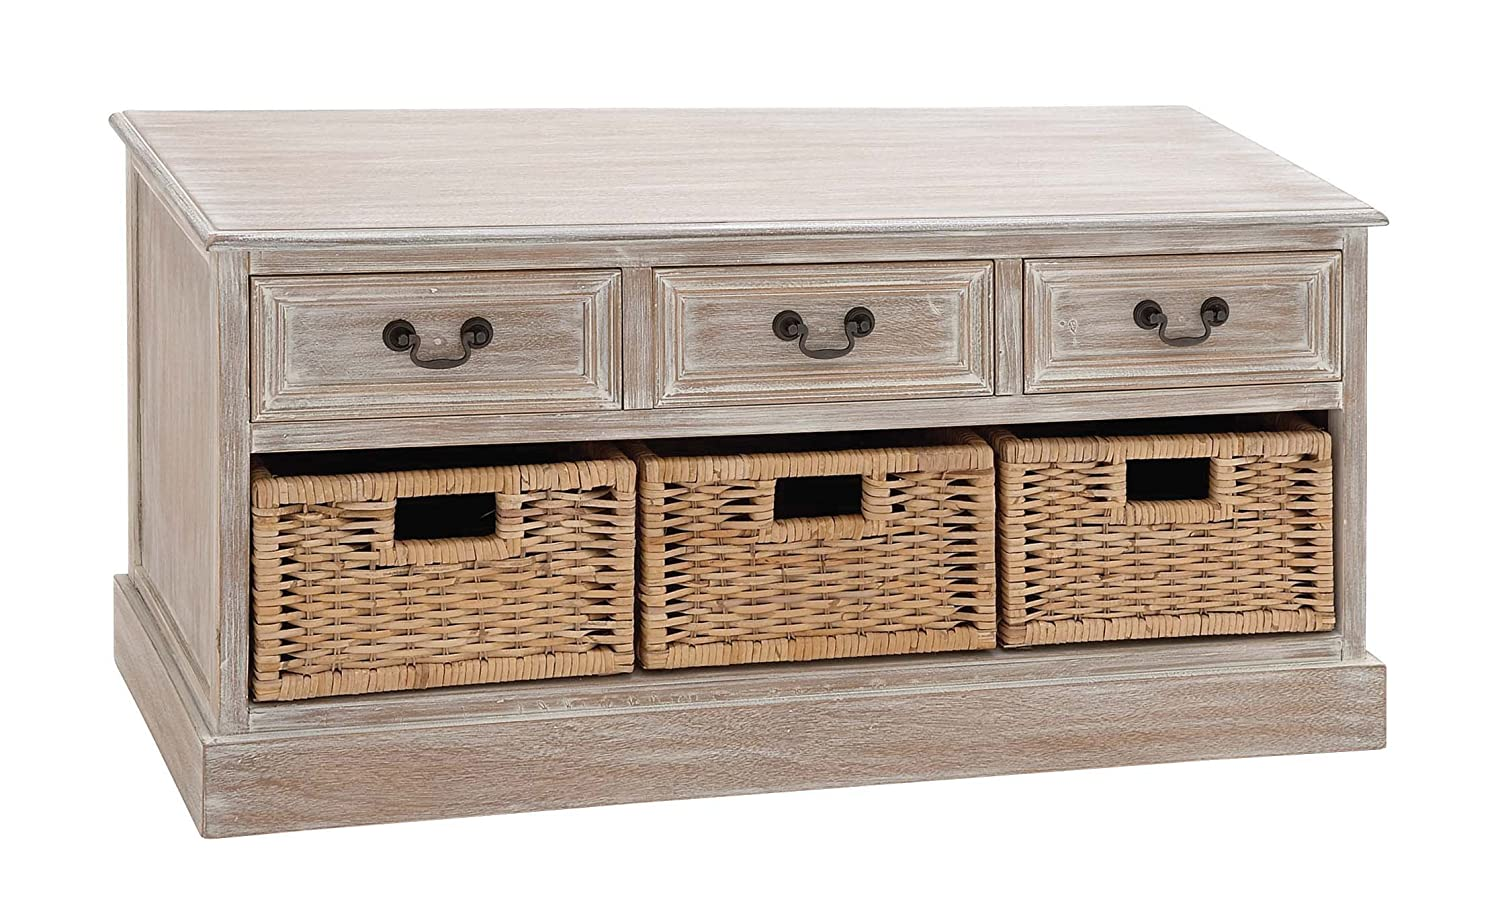 Deco 79 Wood 3-Basket Low Chest, 40 by 20-Inch